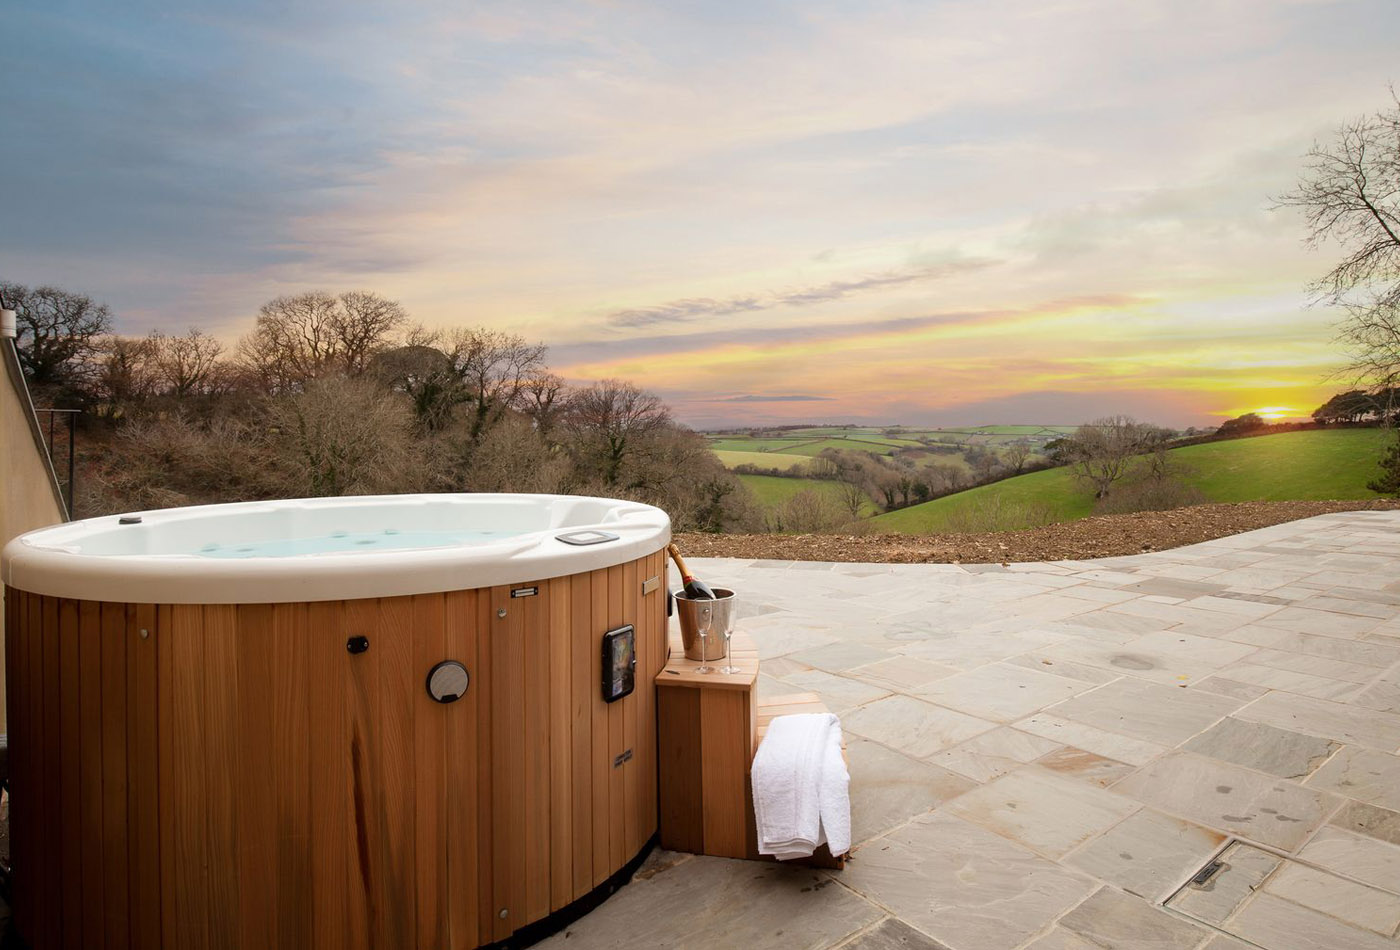 Luxury holiday homes with hot tubs in Devon - Gitcombe Retreat hot tub